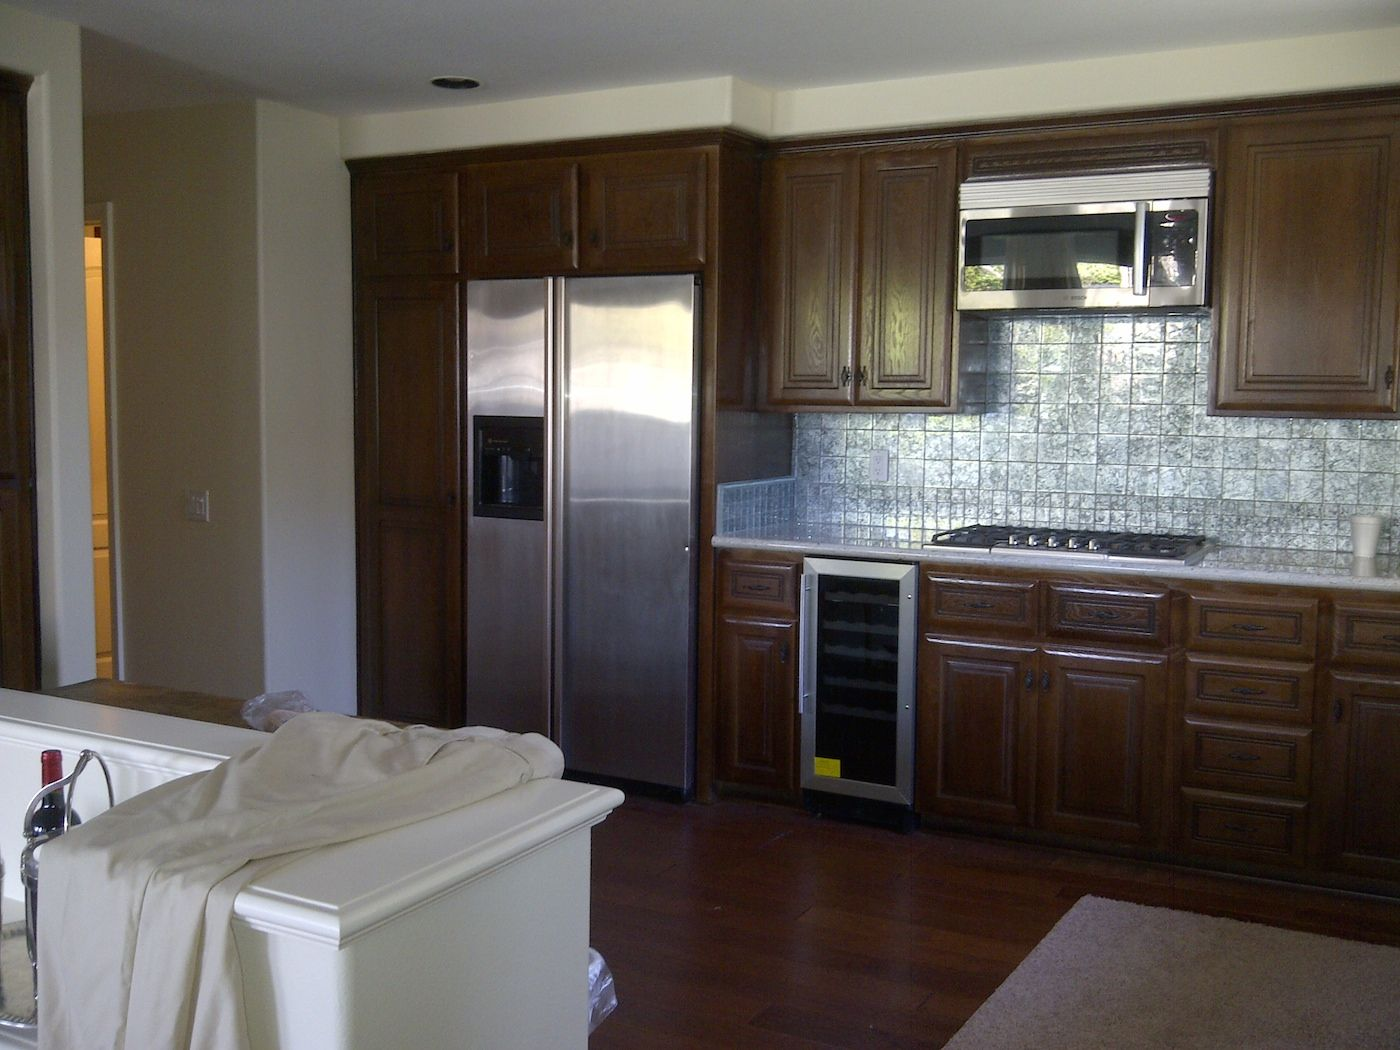 There Are So Many Different Ways To Improve The Look Of Furniture Cabinets And Walls We Have Included Some Photos Kitchen Cabinets Cabinet Painting Cabinets